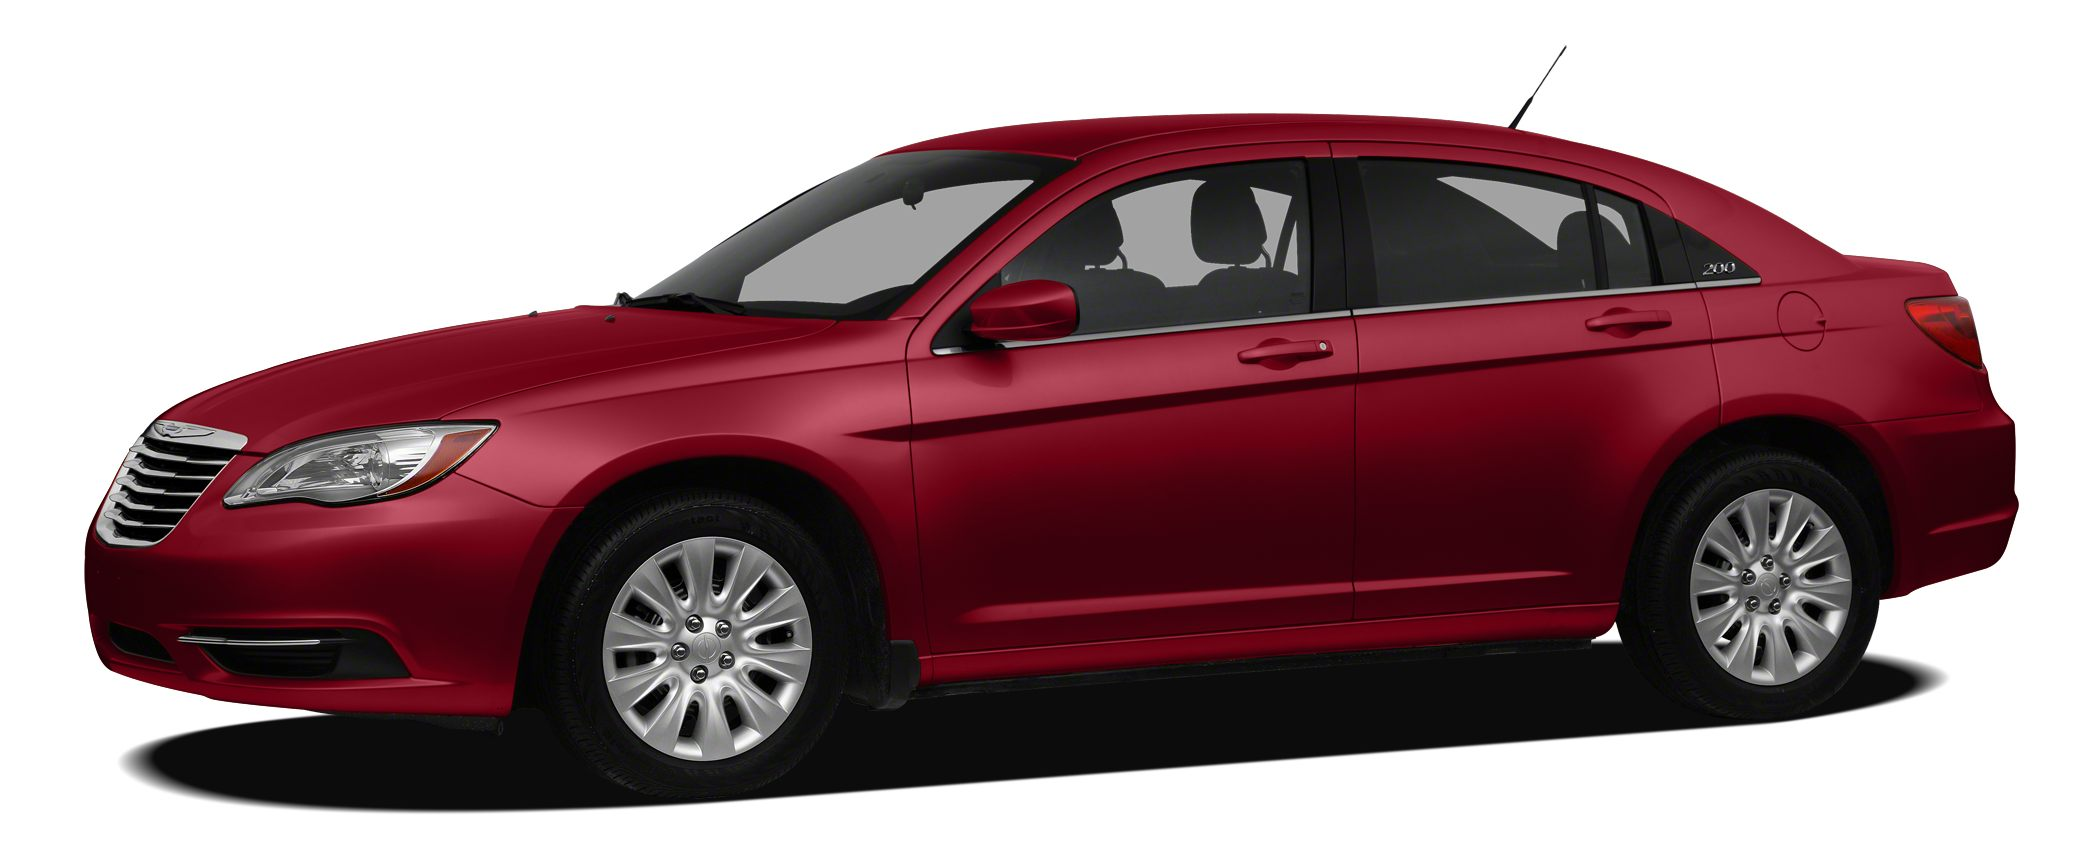 2011 Chrysler 200 Touring DISCLAIMER We are excited to offer this vehicle to you but it is curren